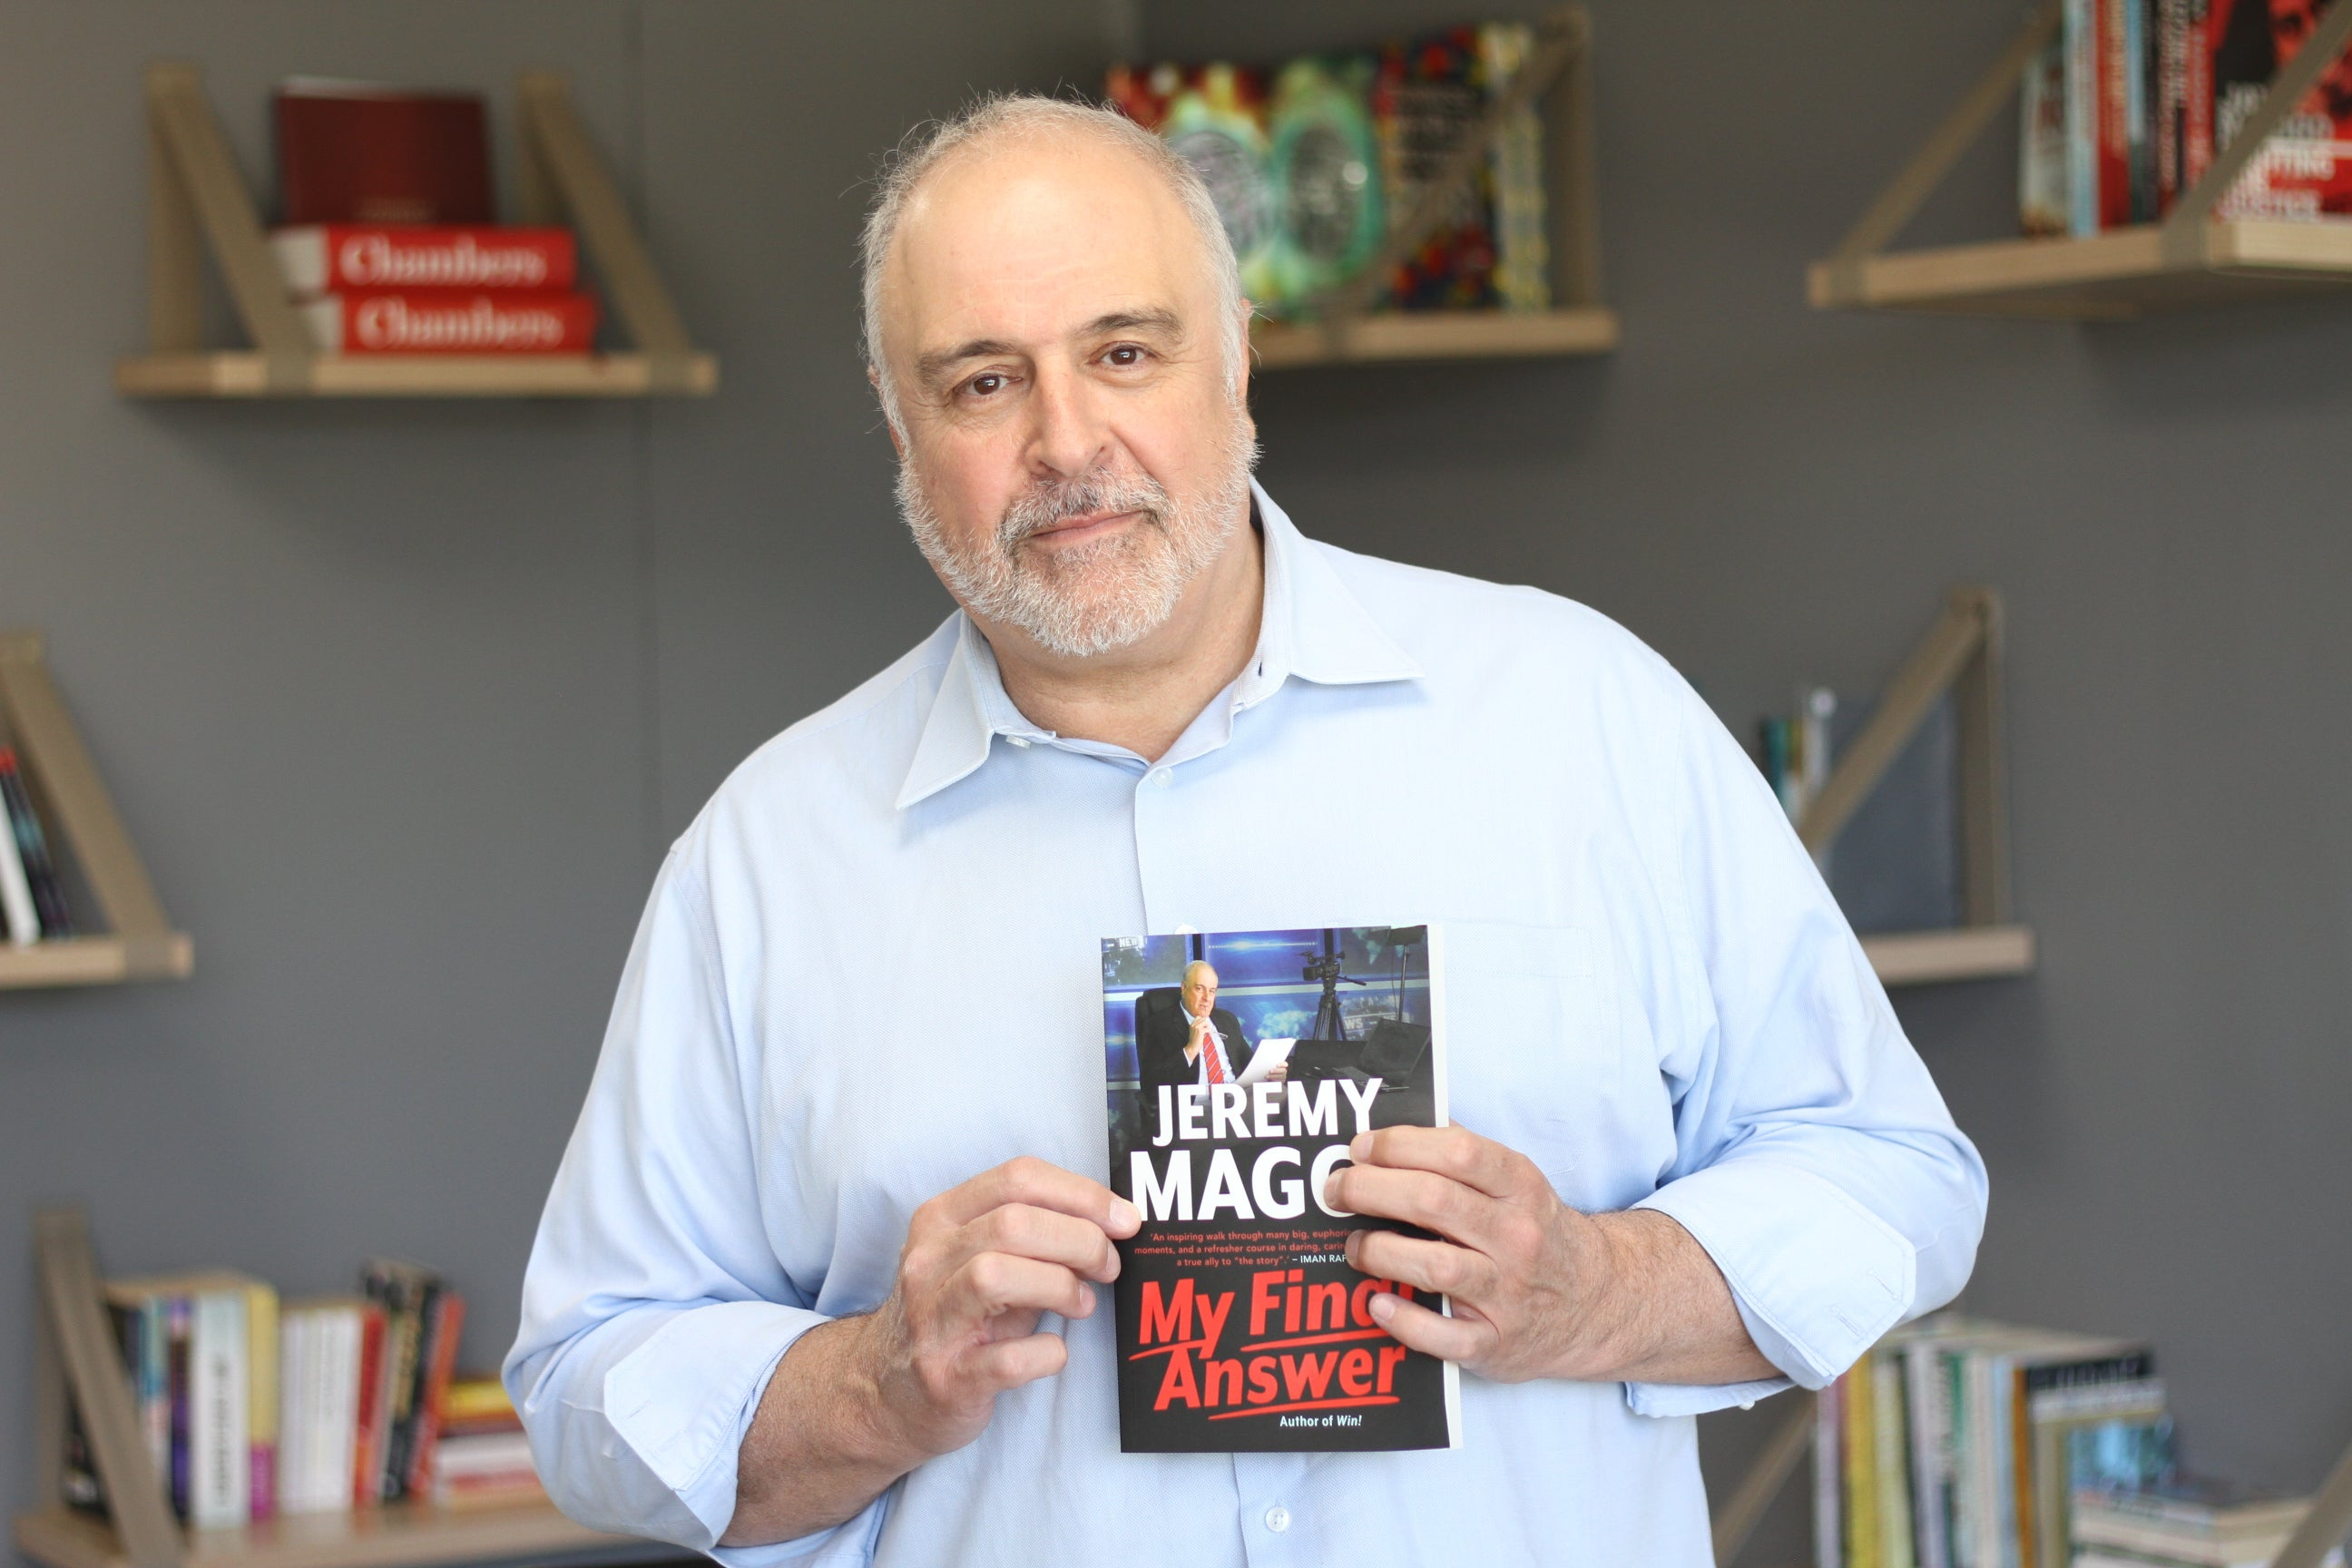 A photo of Jeremy Maggs in a blue shirt, holding a copy of his book 'Final Answer'